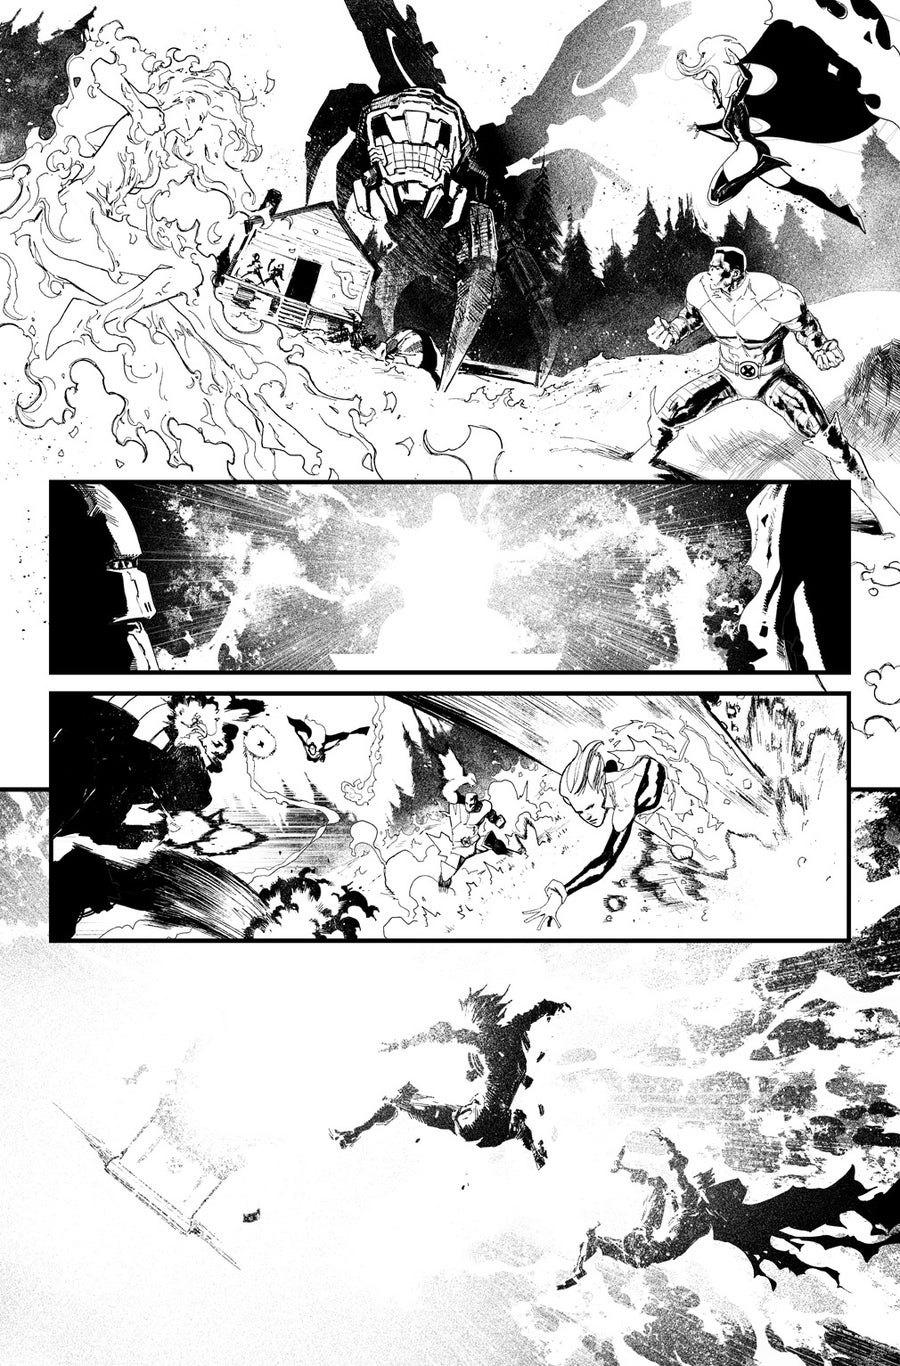 Image of HUNT FOR WOLVERINE P.15 ARTIST'S PROOF